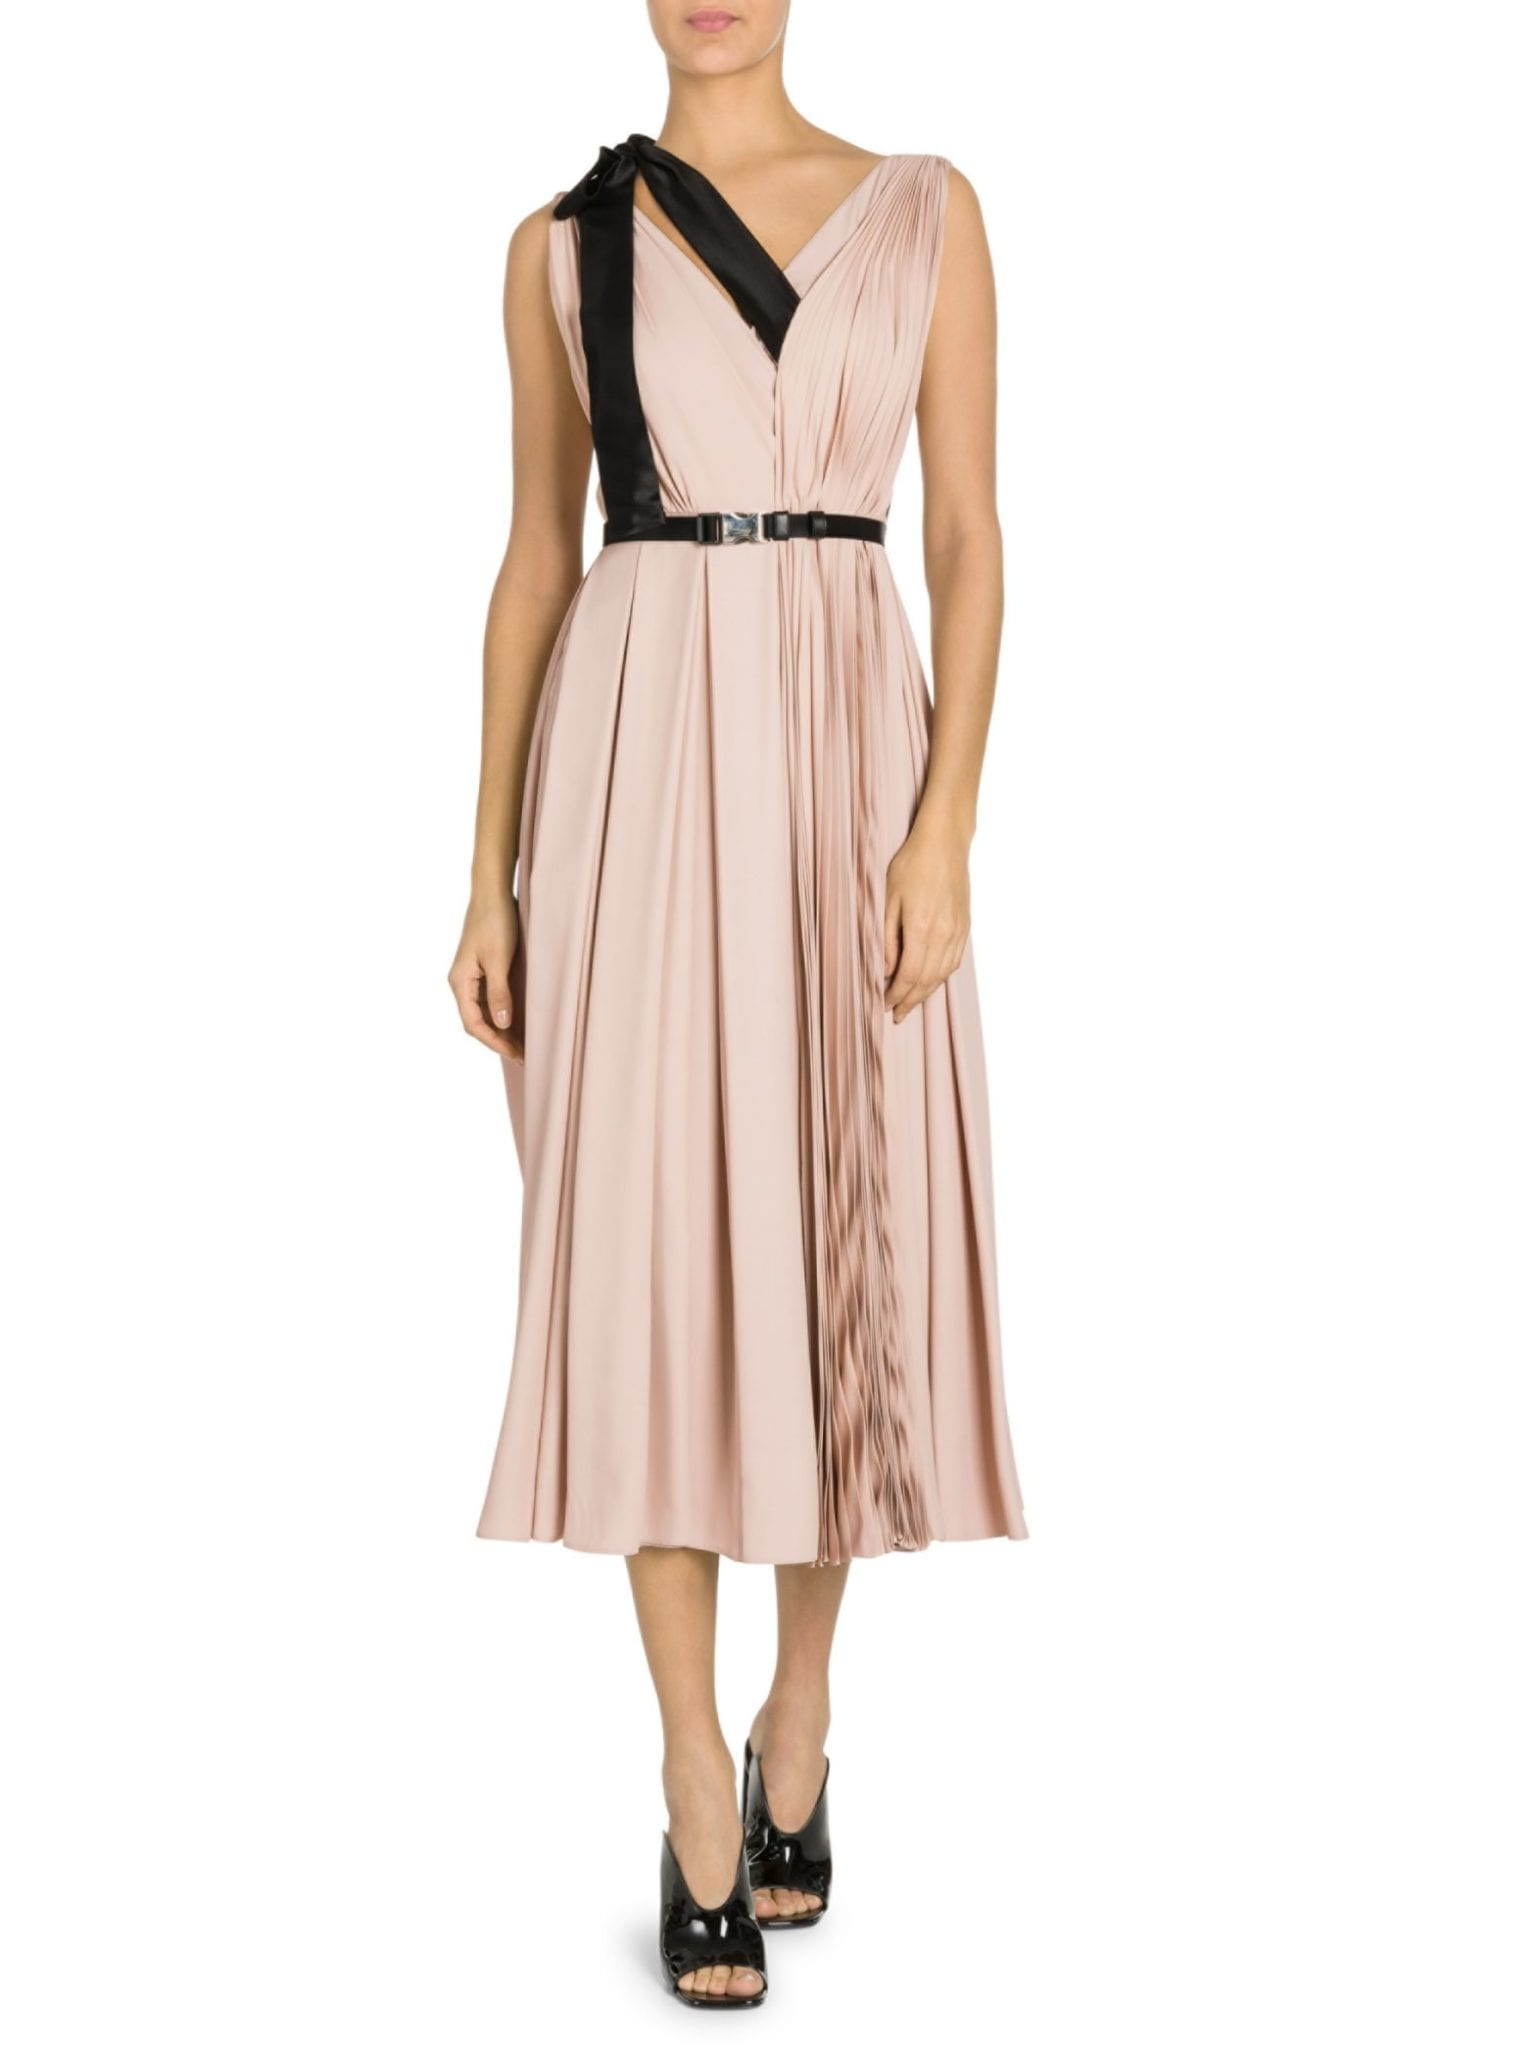 PRADA Ribbon Detail Pleated V-Neck Midi Pink Dress